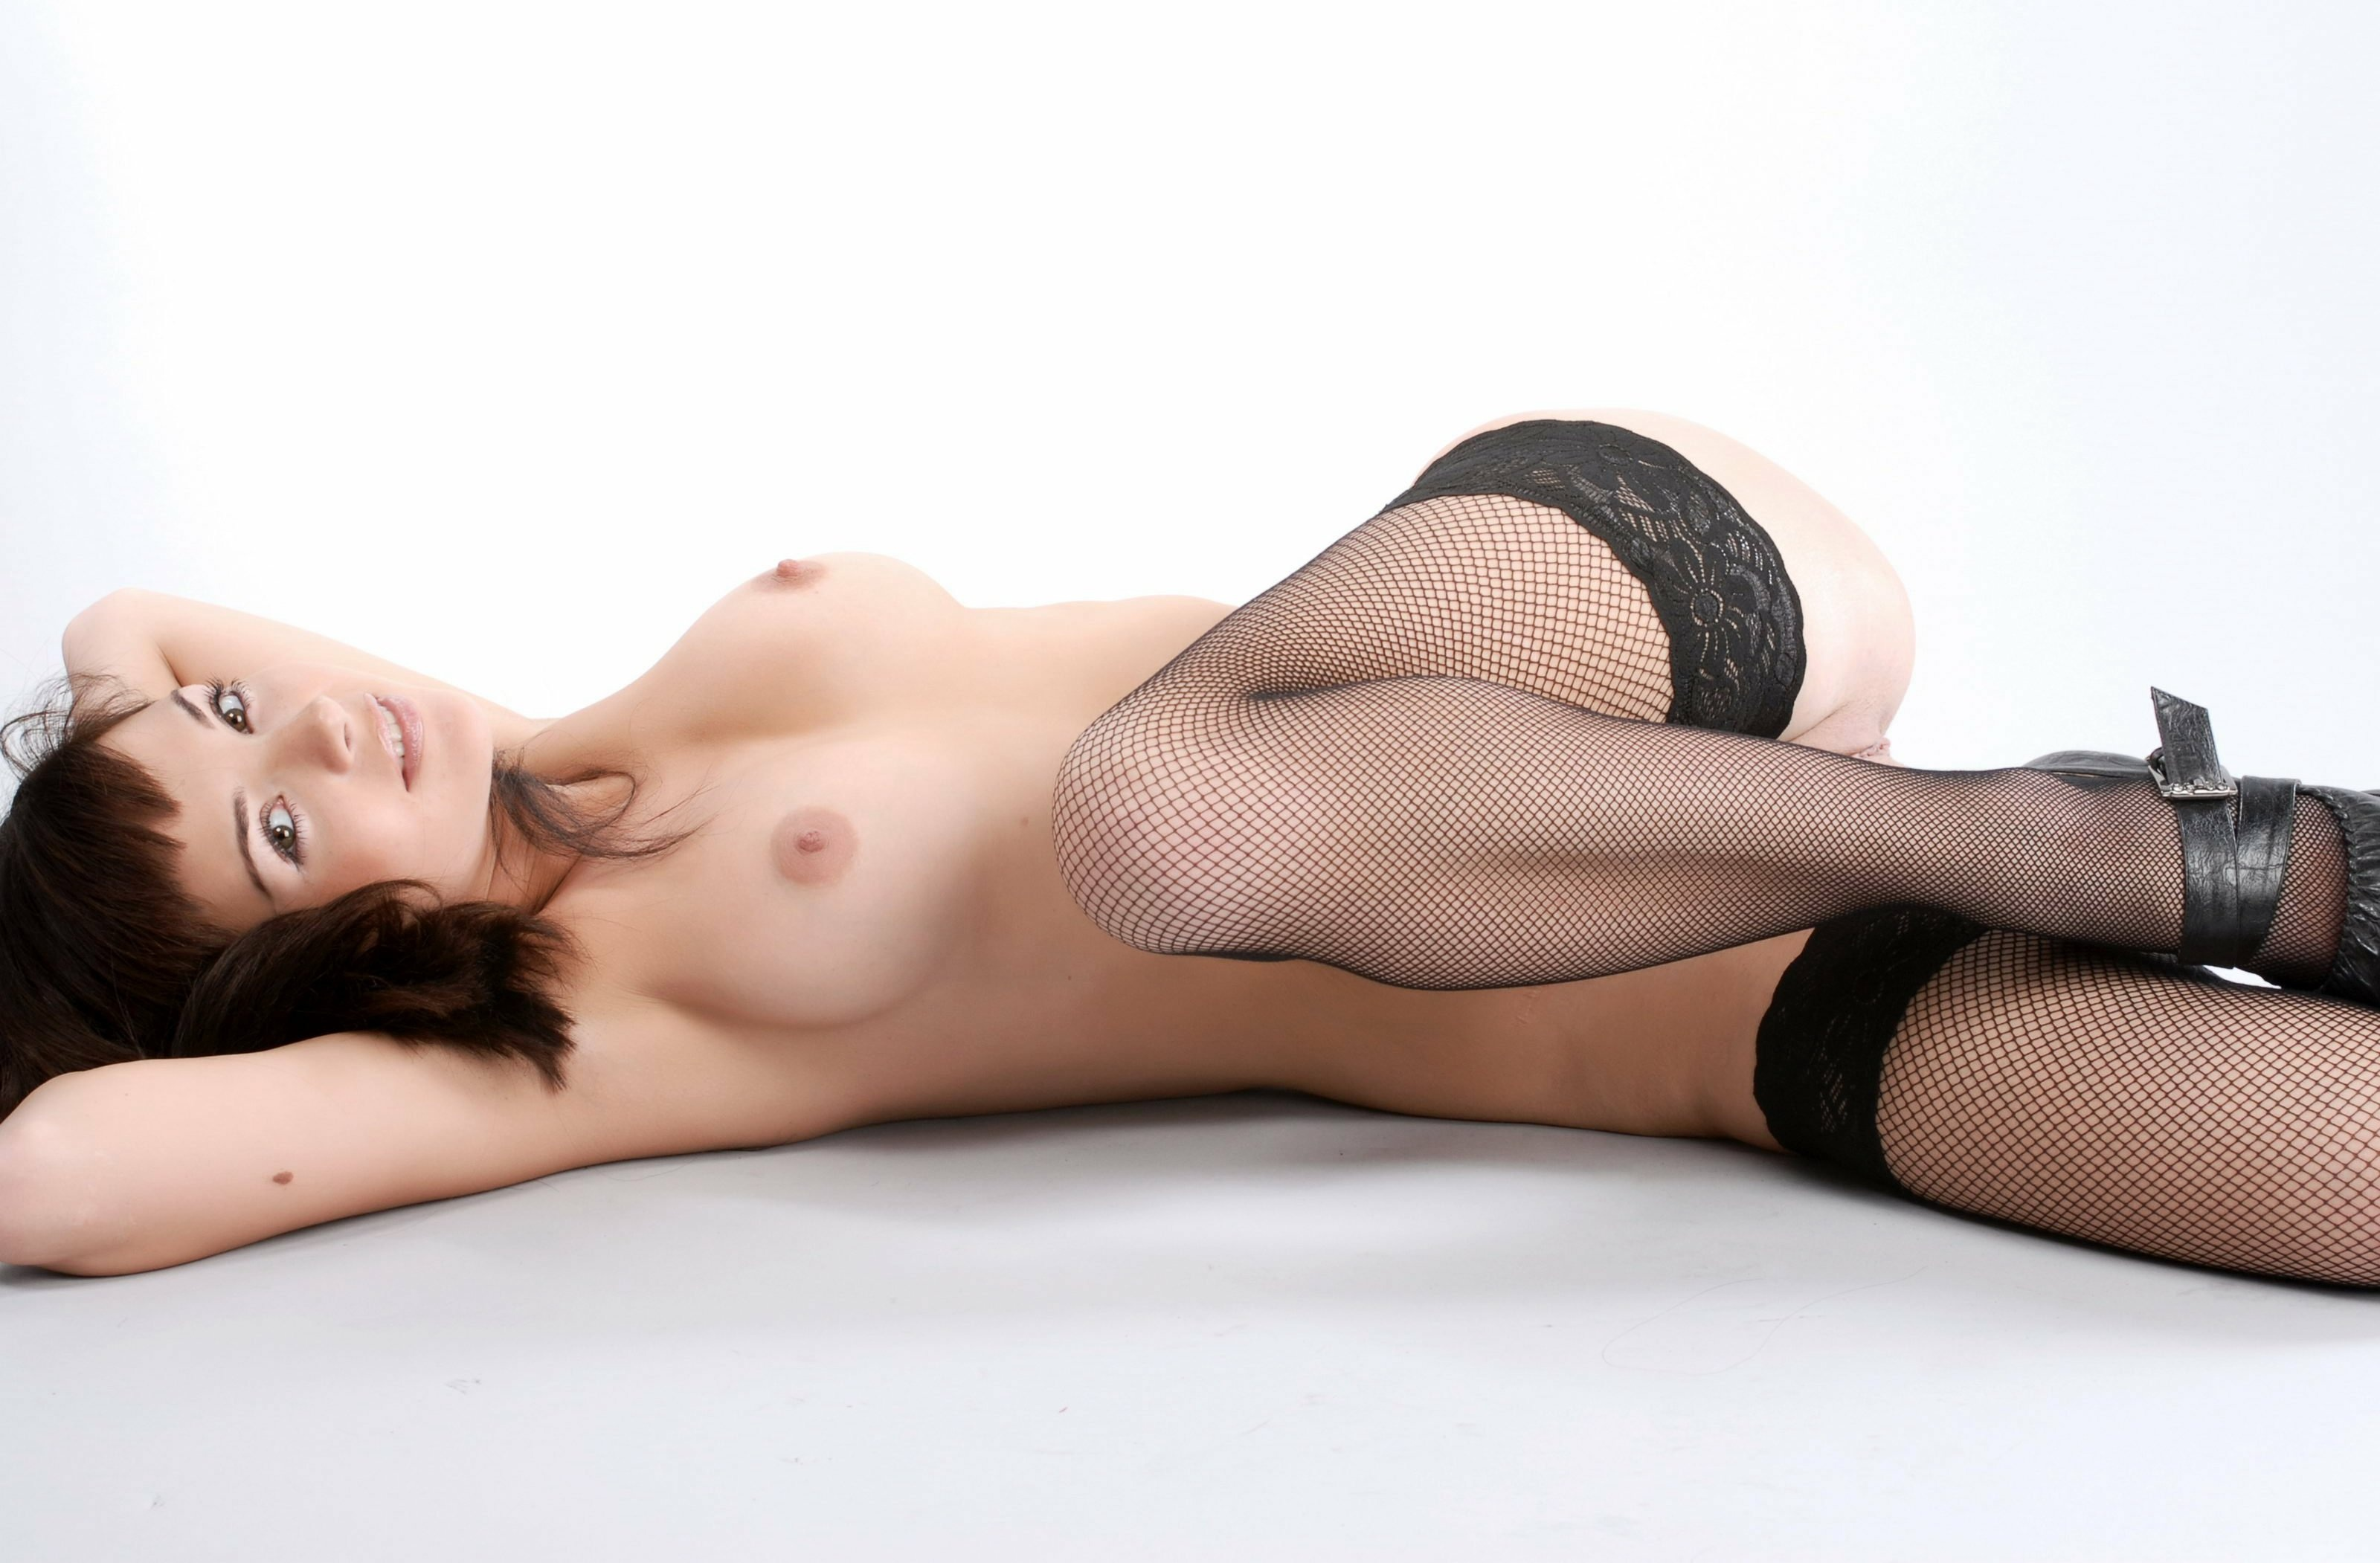 Awesomelooking brunette in stockings